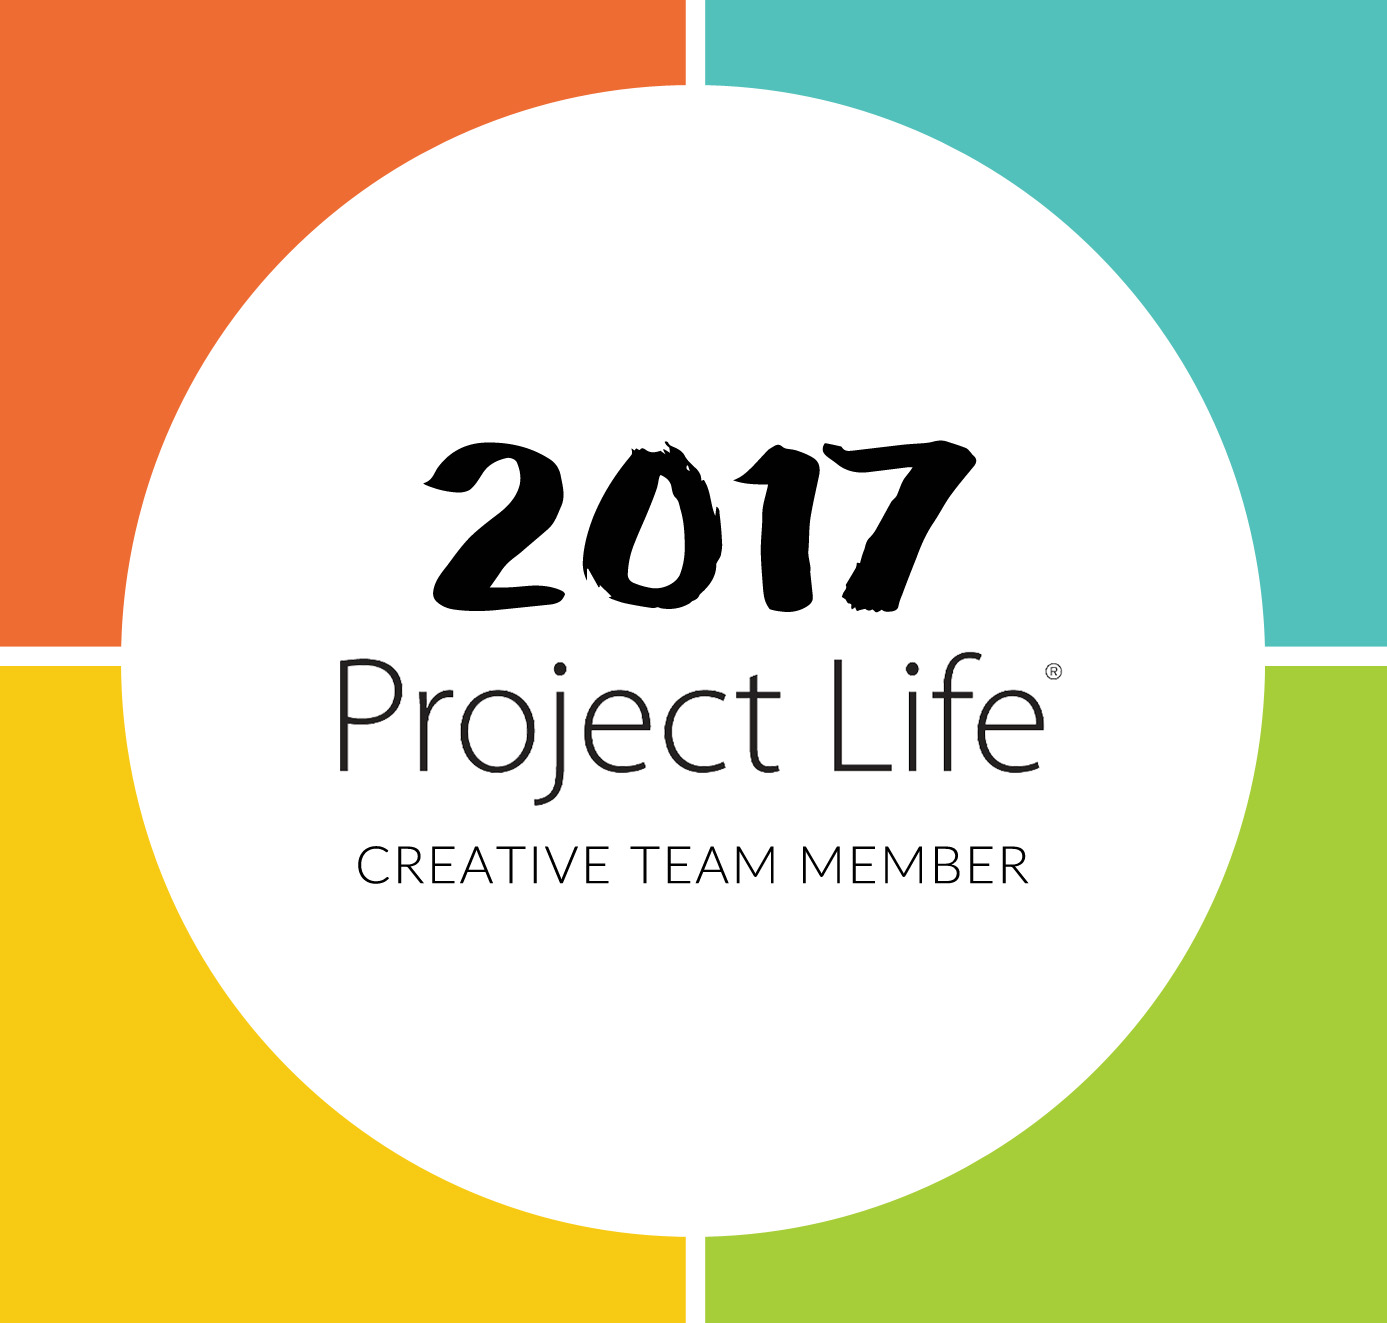 2017 Project Life Creative Team Member